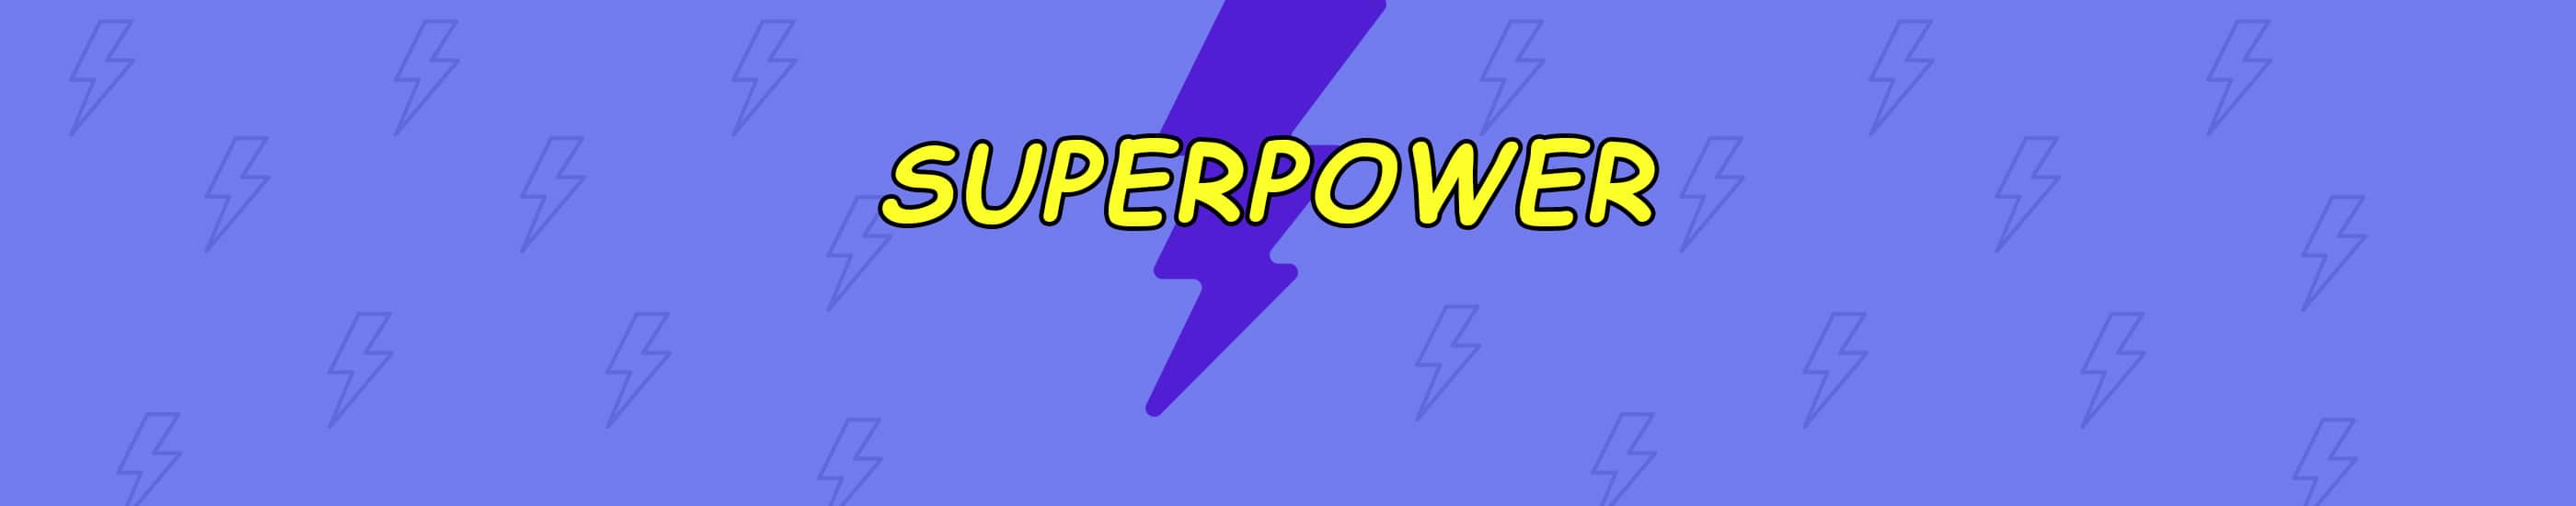 Header for Discover the superpower of the buttons